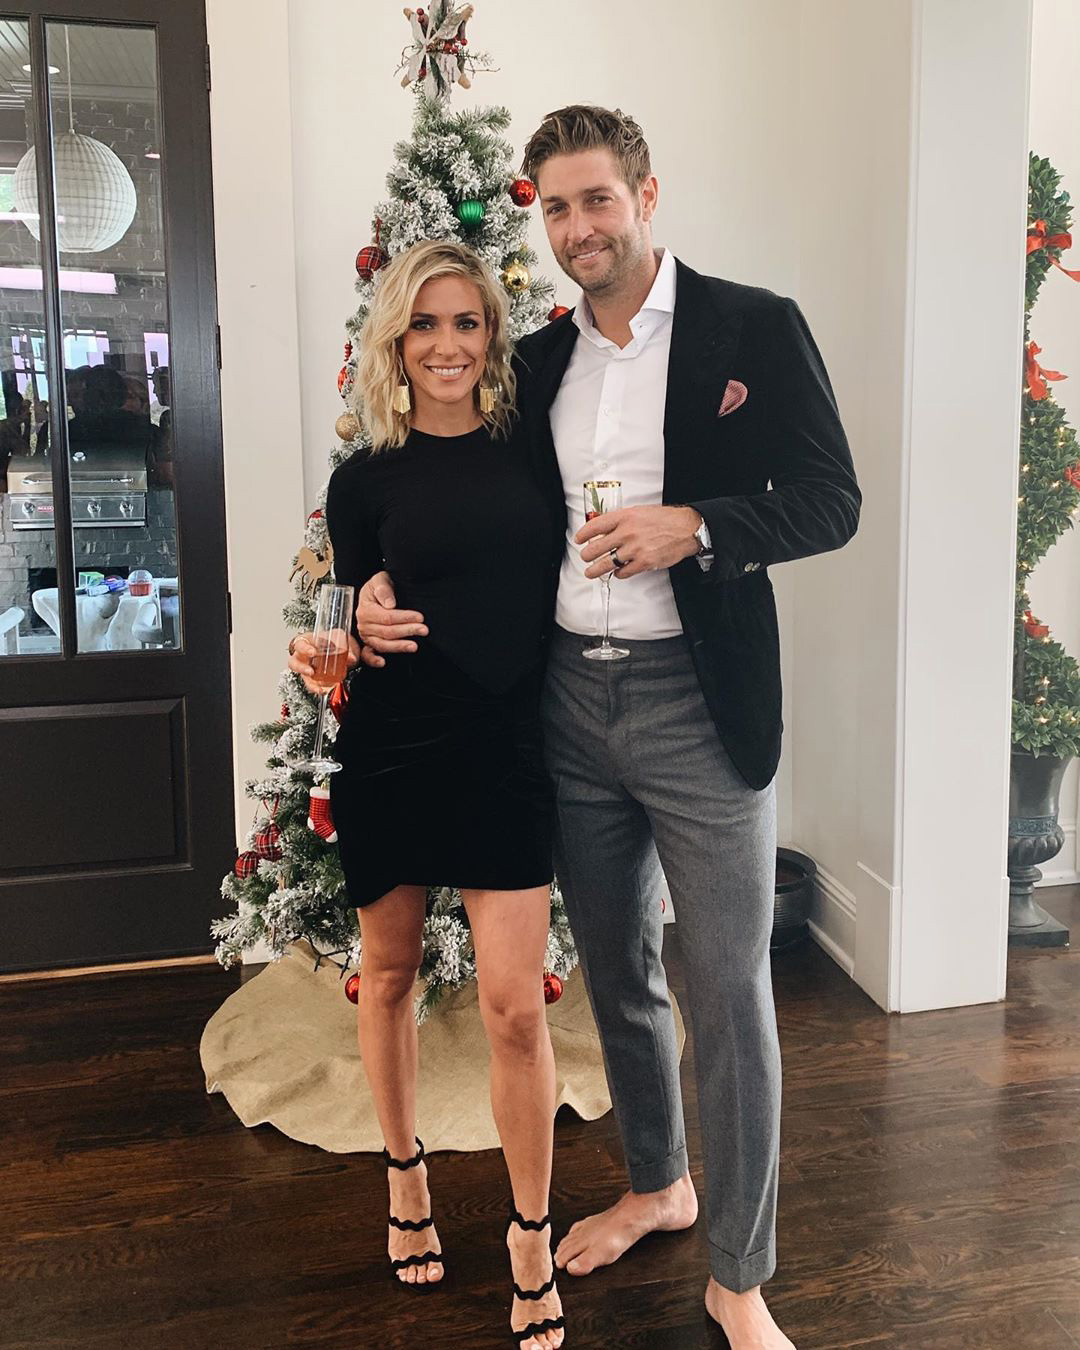 Kristin Cavallari and Jay Cutler's relationship timeline